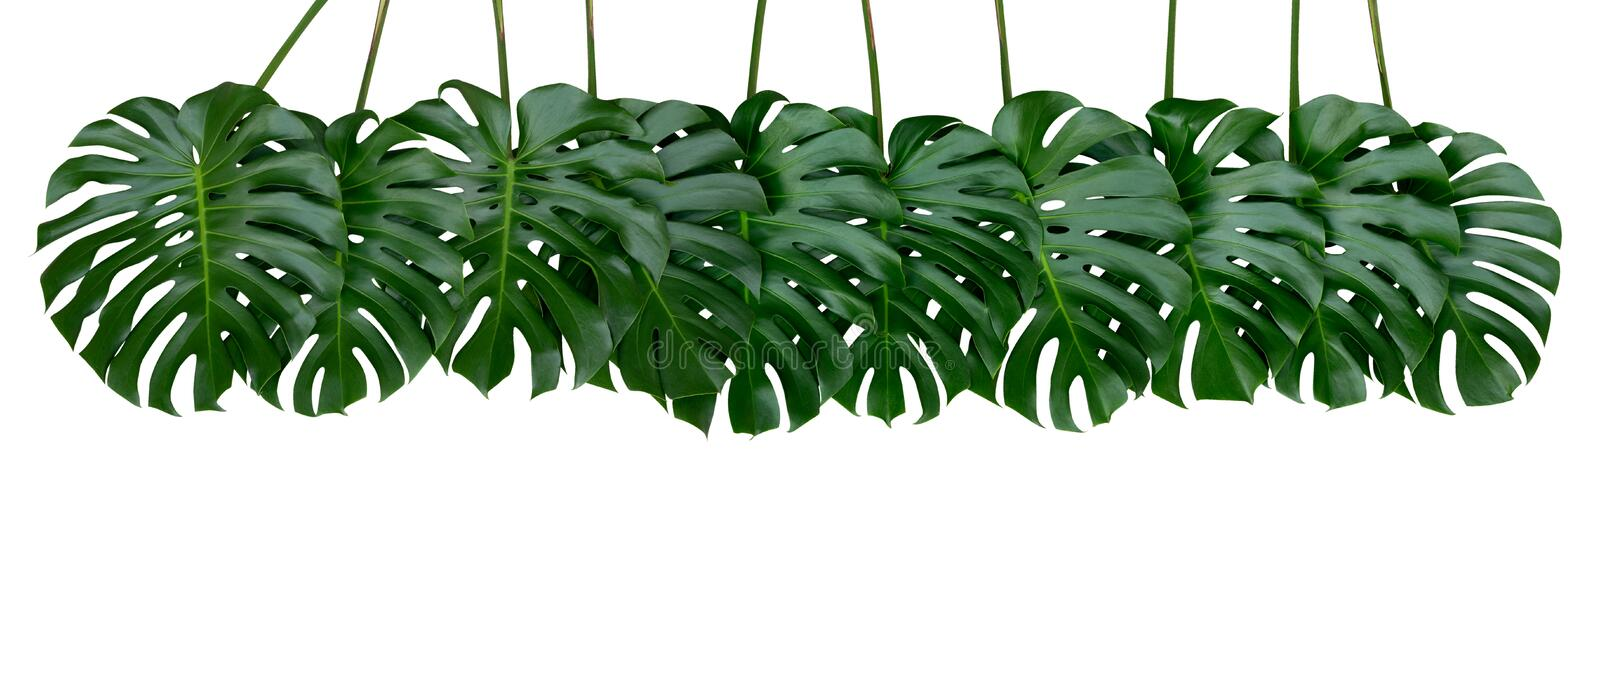 Monstera plant leaves, the tropical evergreen vine isolated on white background, path. Monstera plant leaves, the tropical evergreen vine isolated on white stock photos